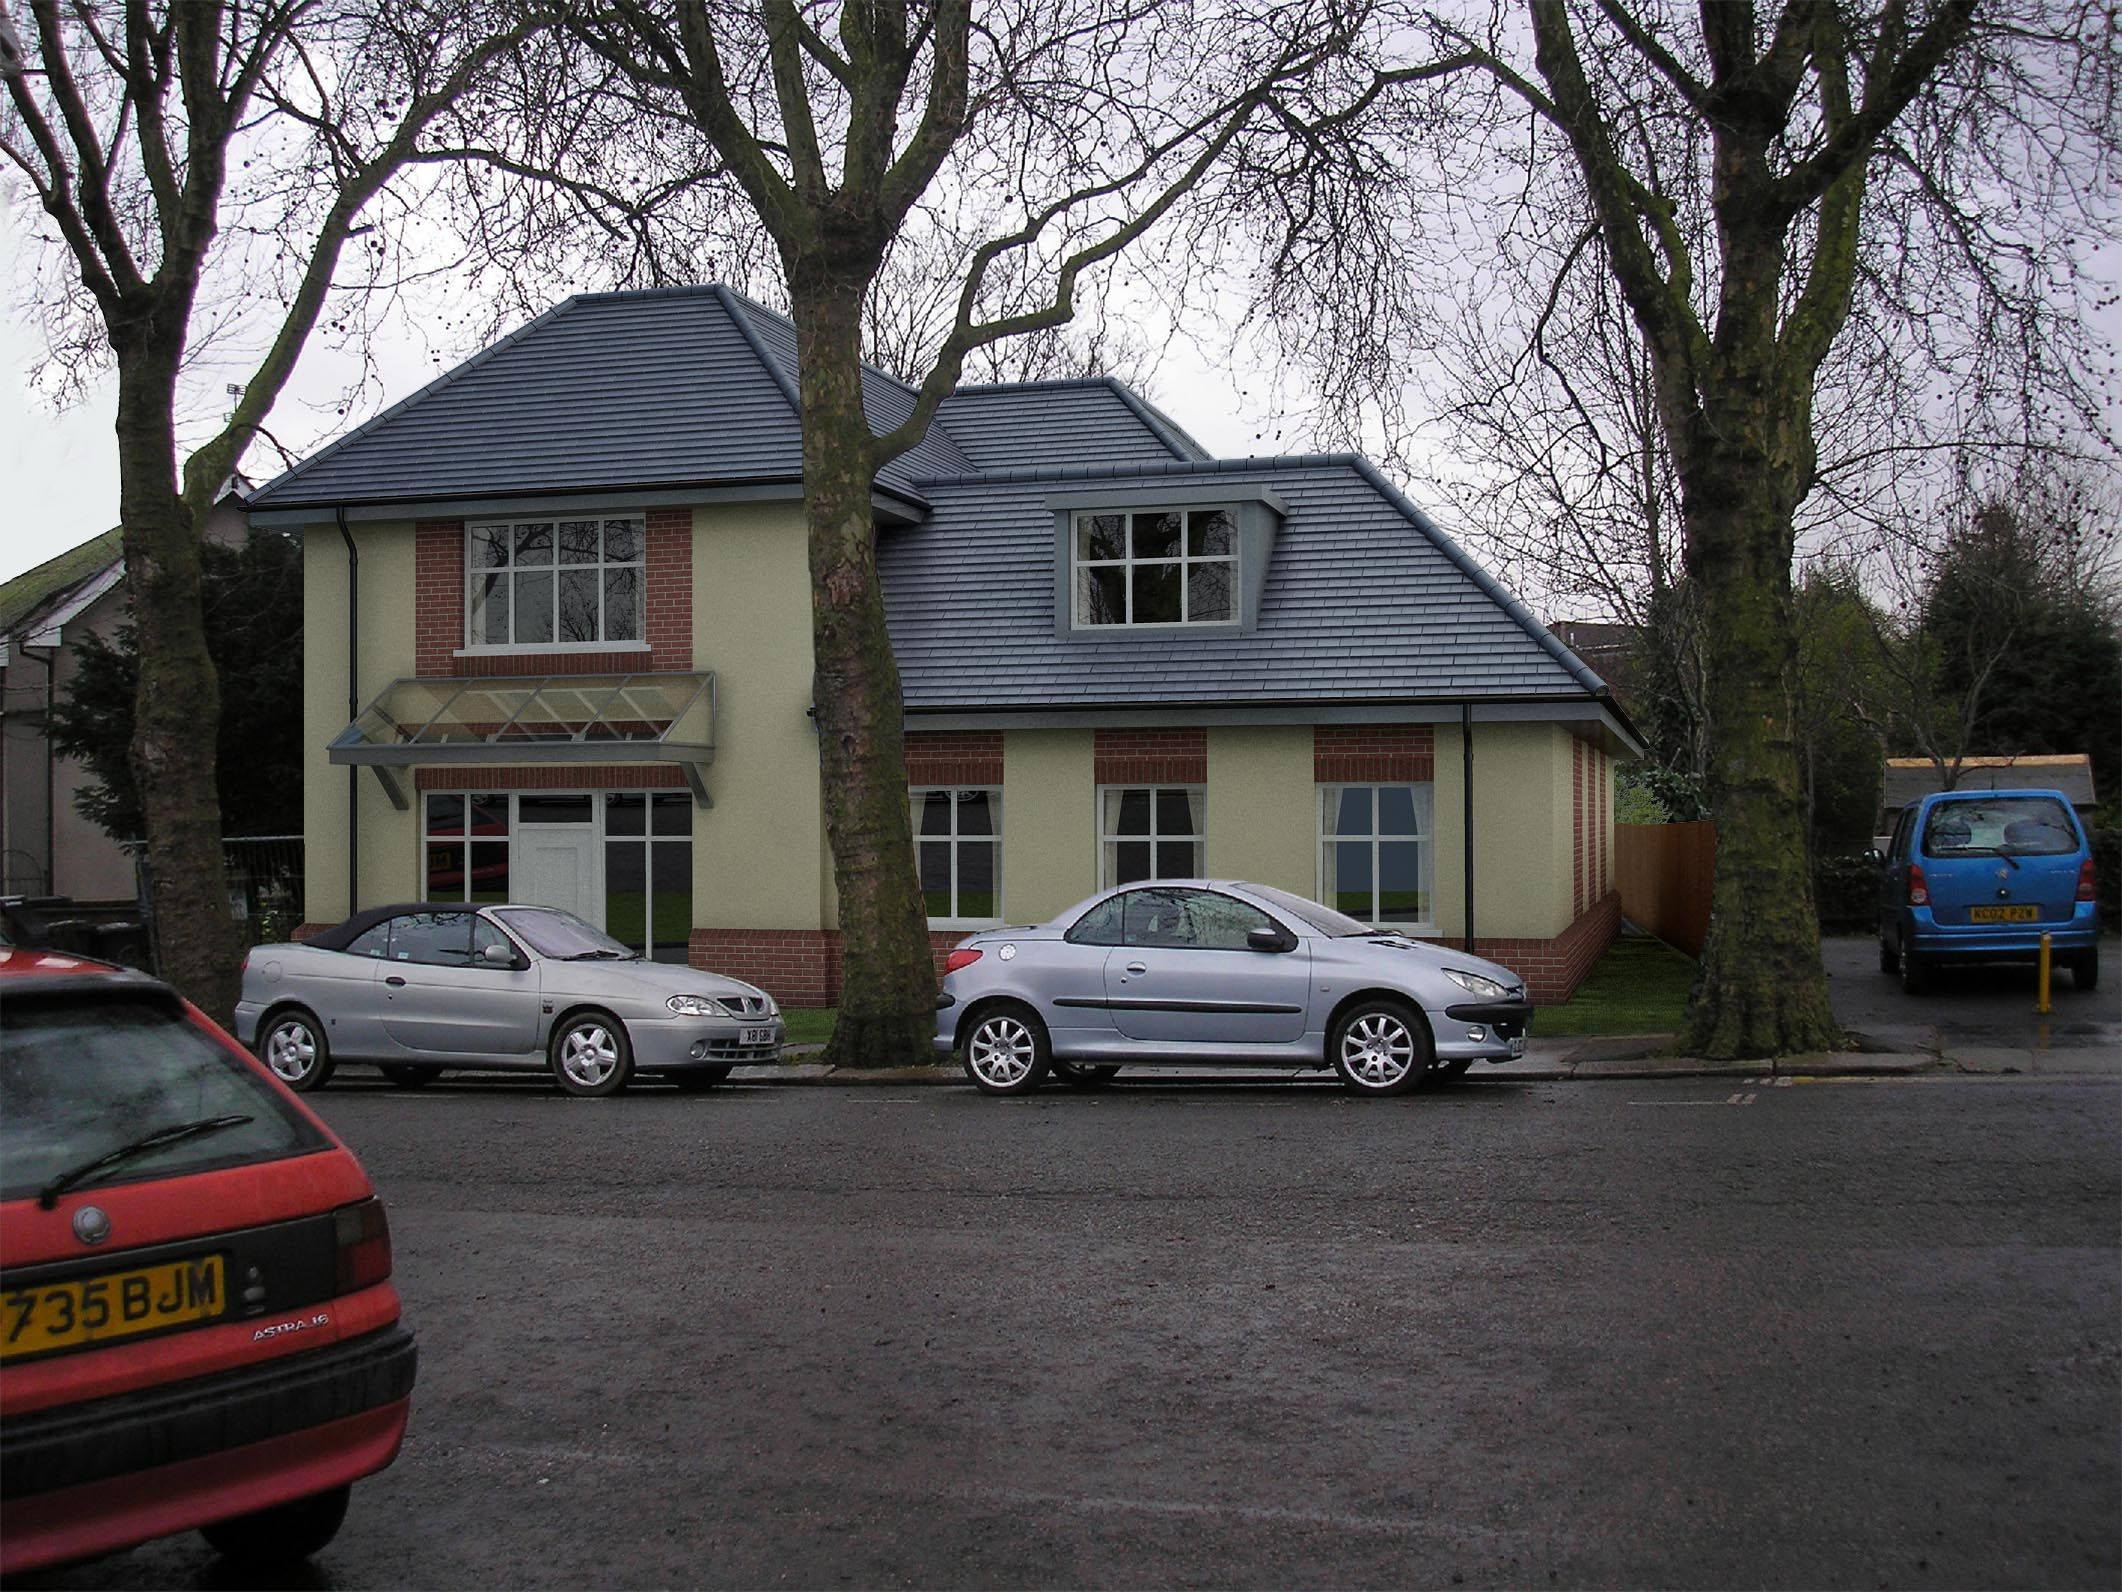 Woodberry Grove Finchley N12